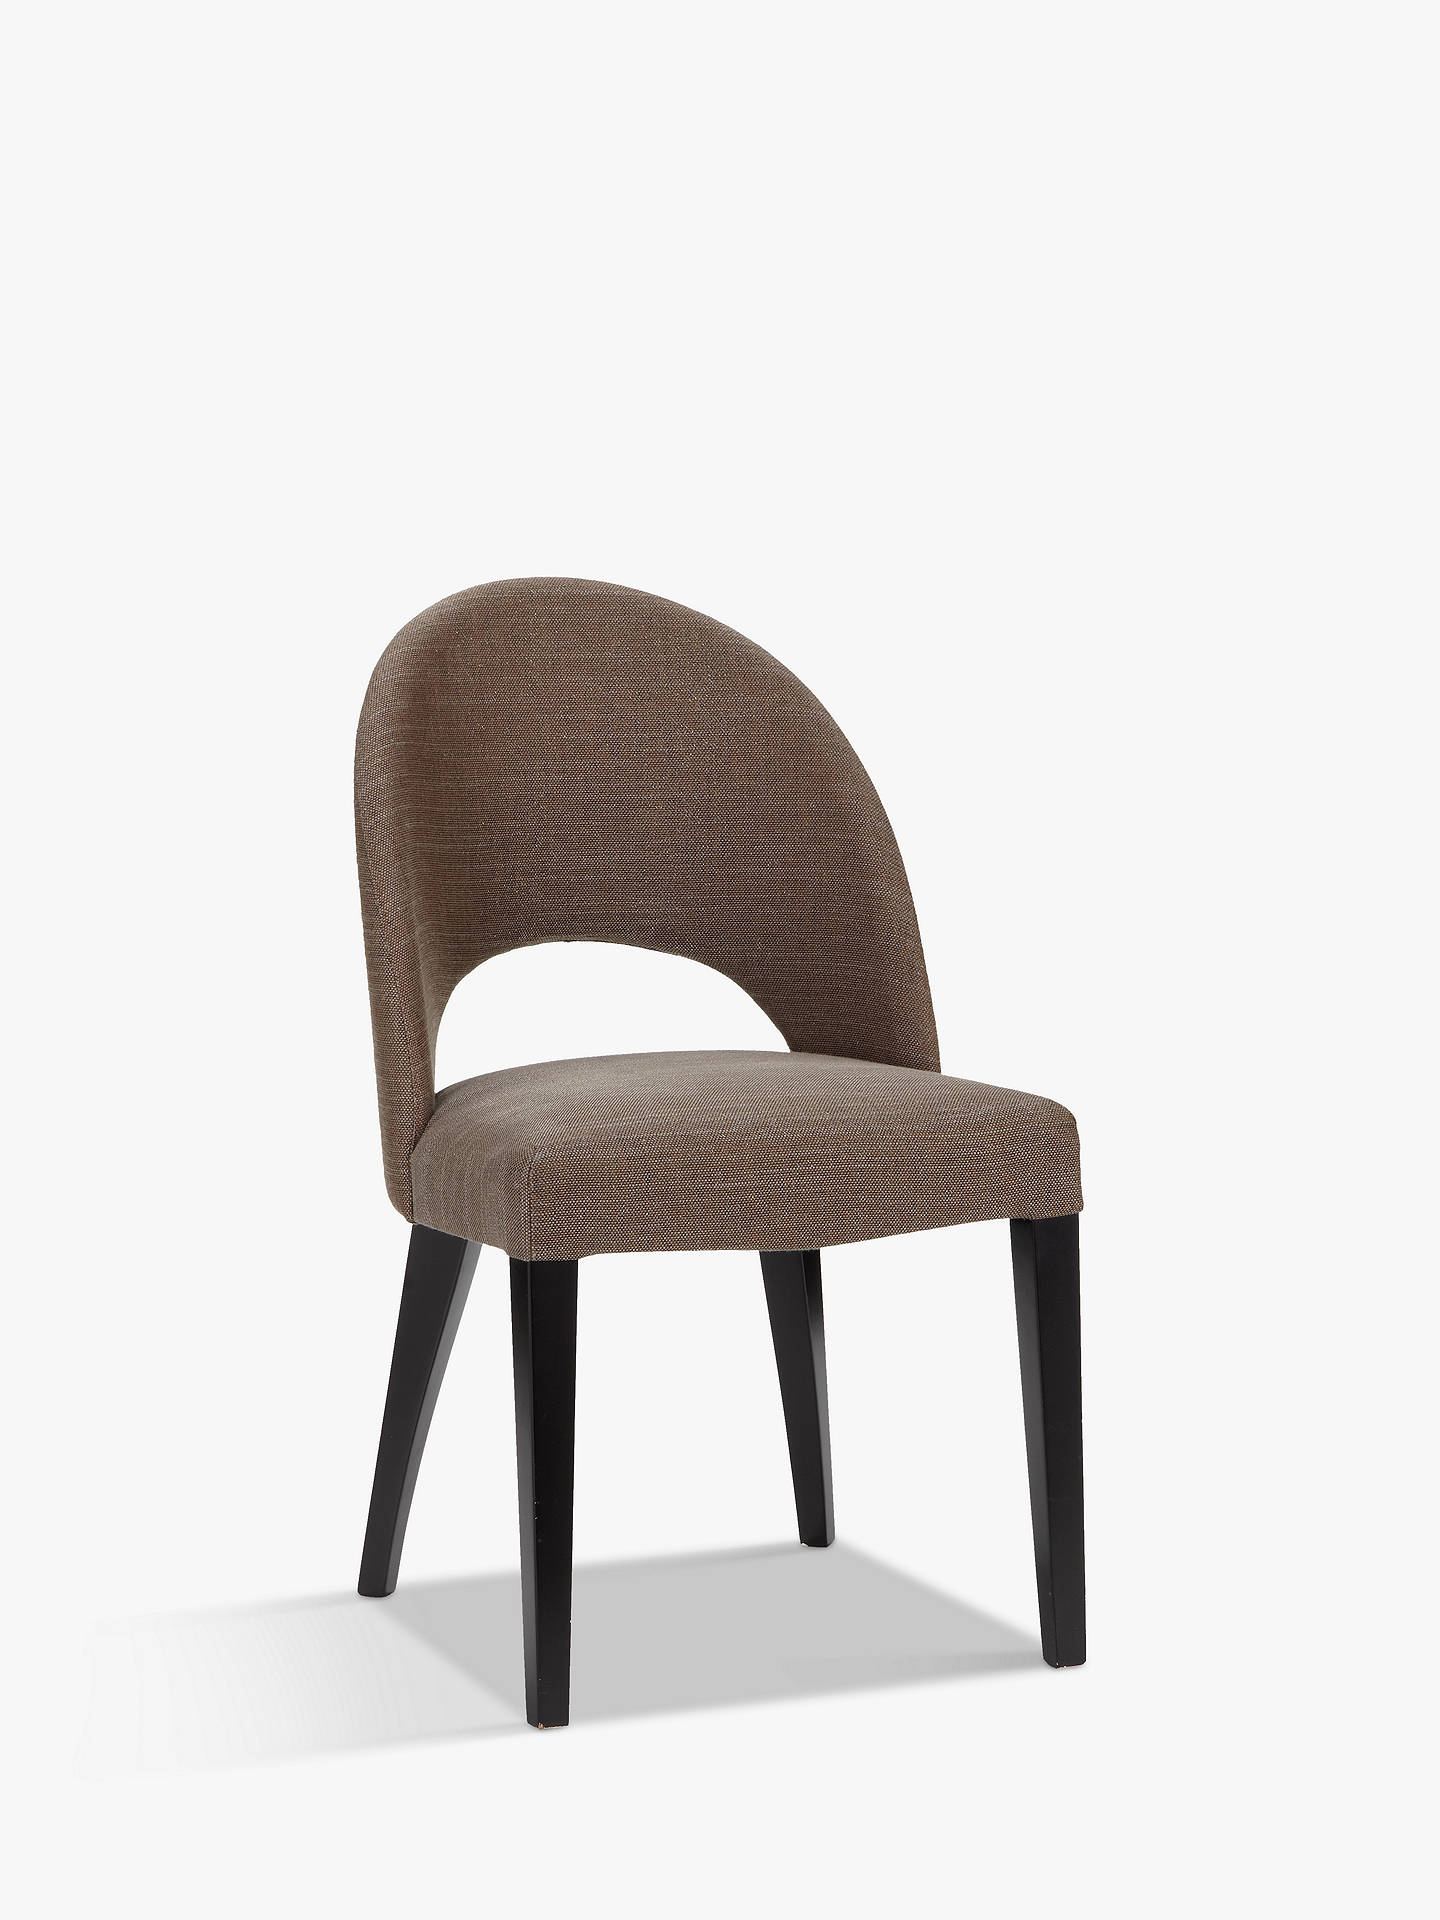 Awesome Dining Chair Online